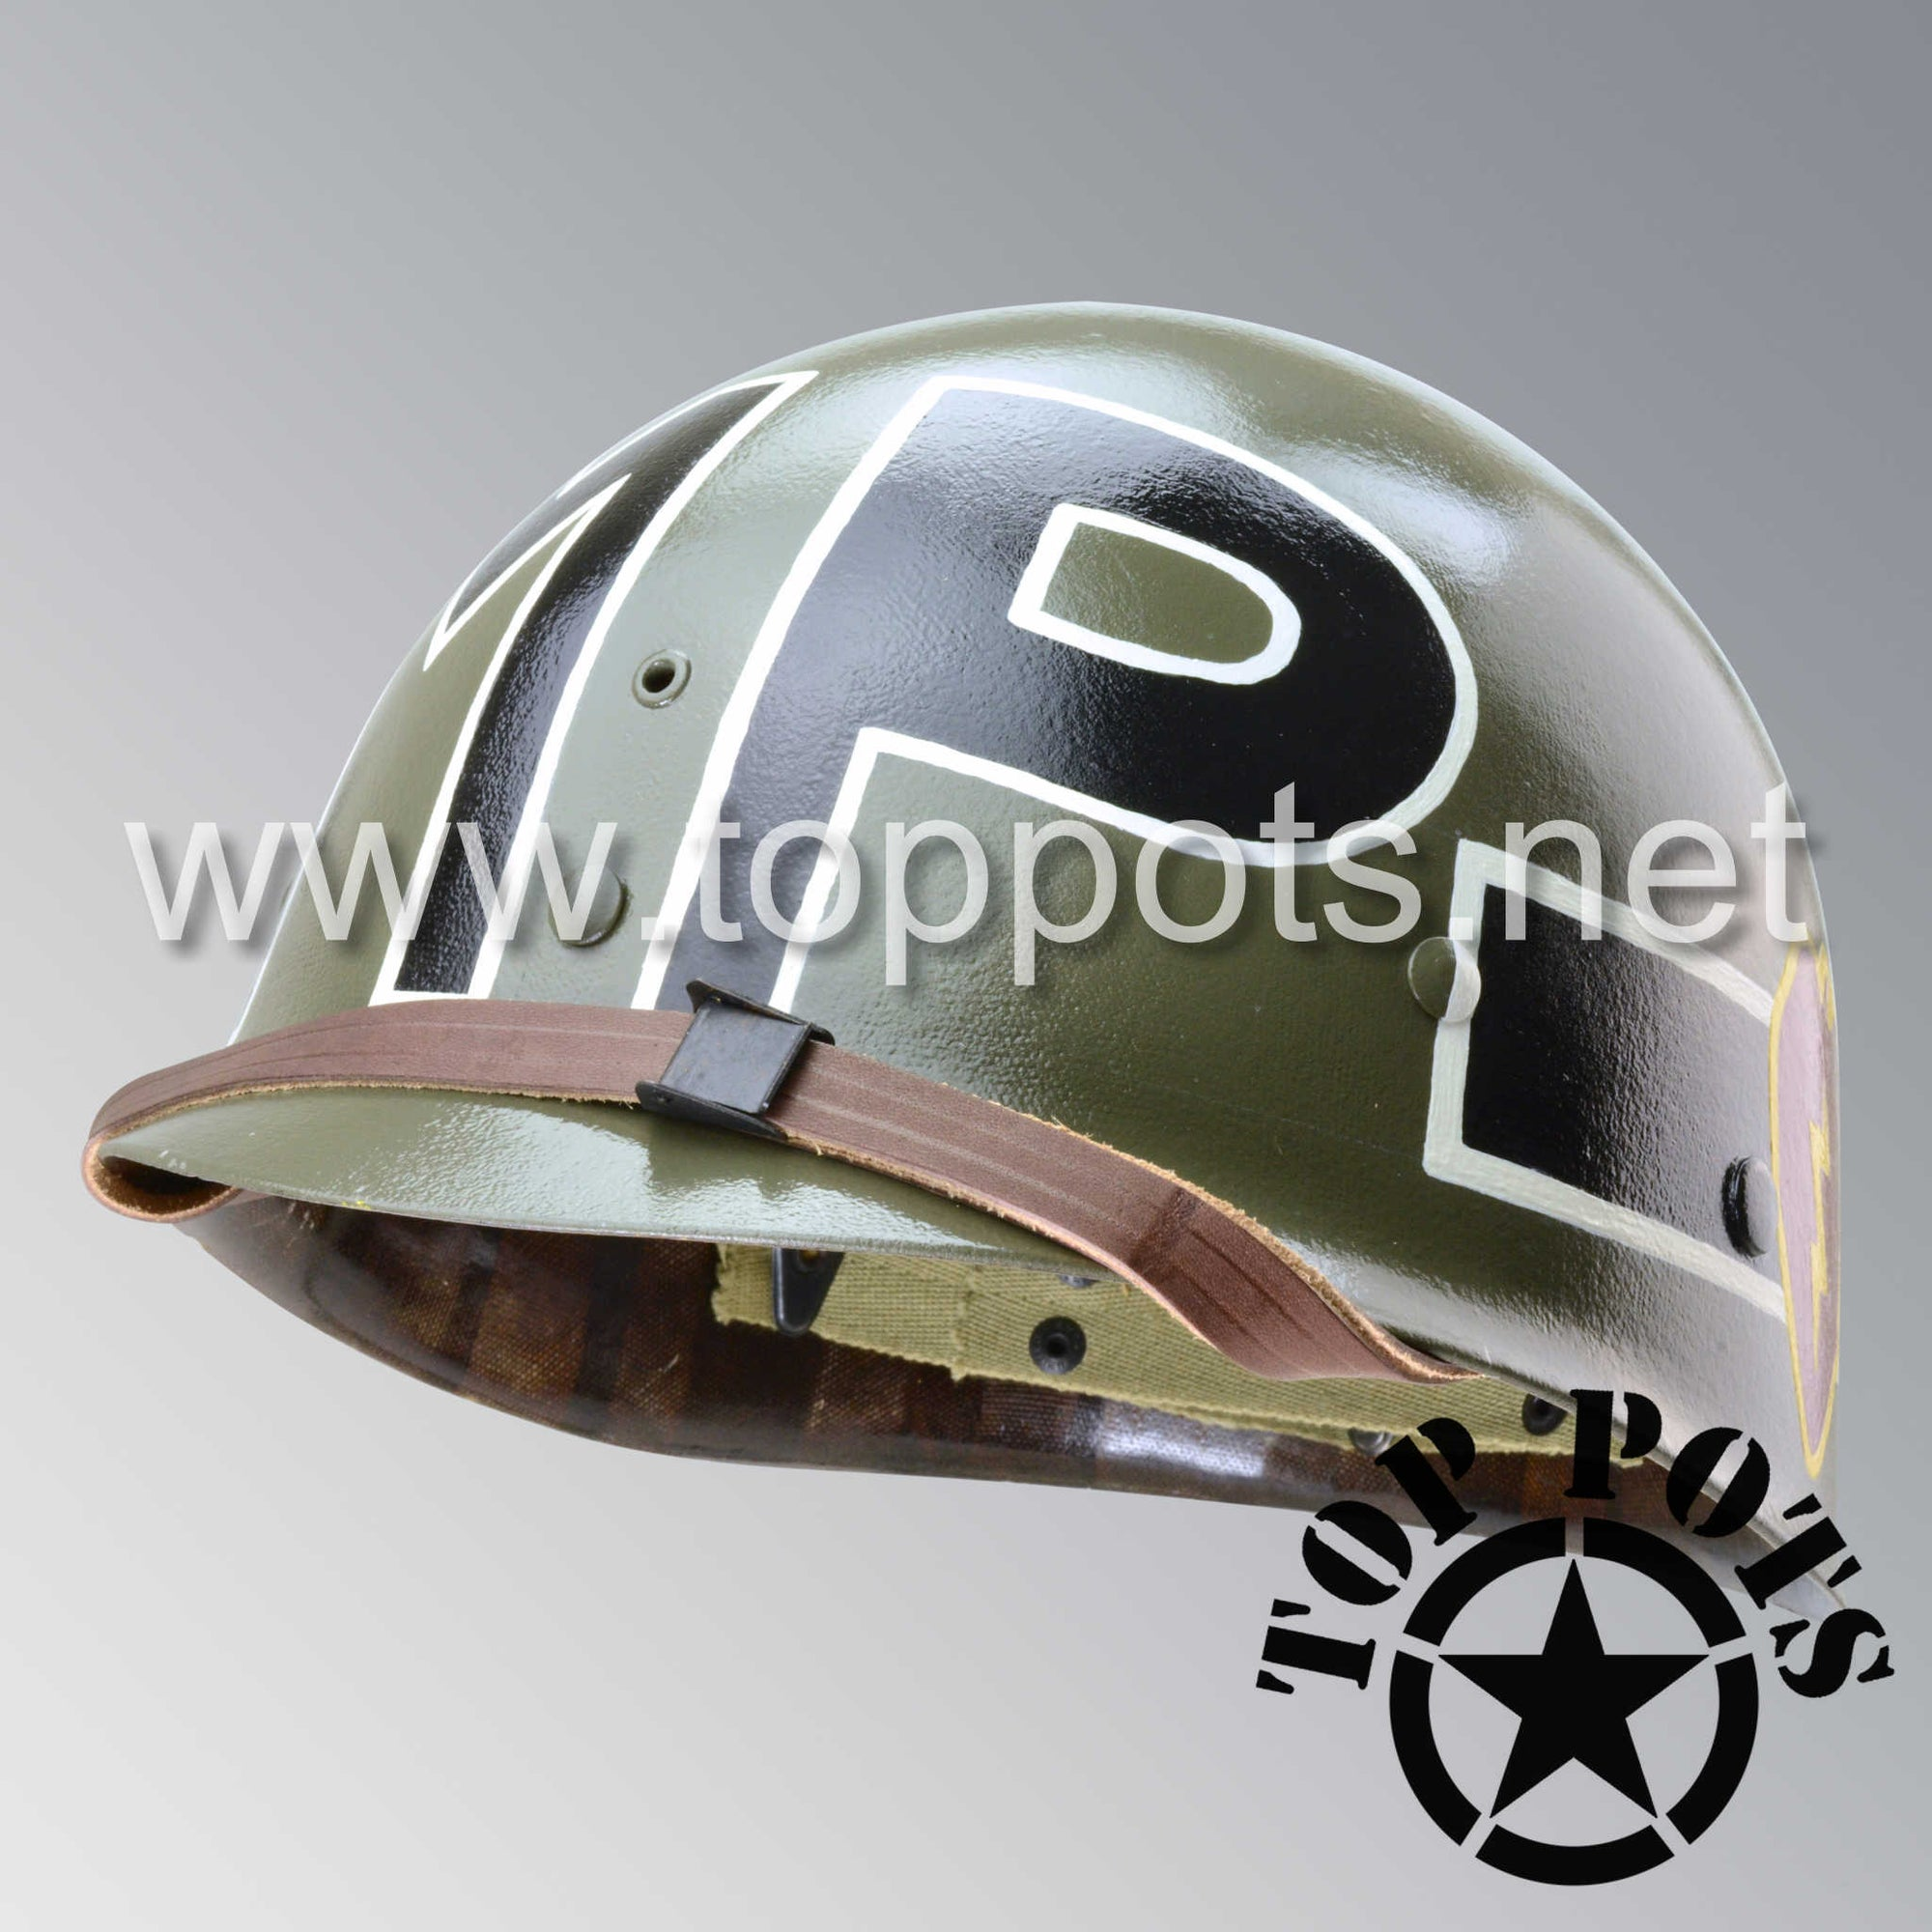 Image 1 of Korean War US Army Restored Original M1 Infantry Helmet Liner with 25th MP Military Police Company 25th Infantry Division Emblem